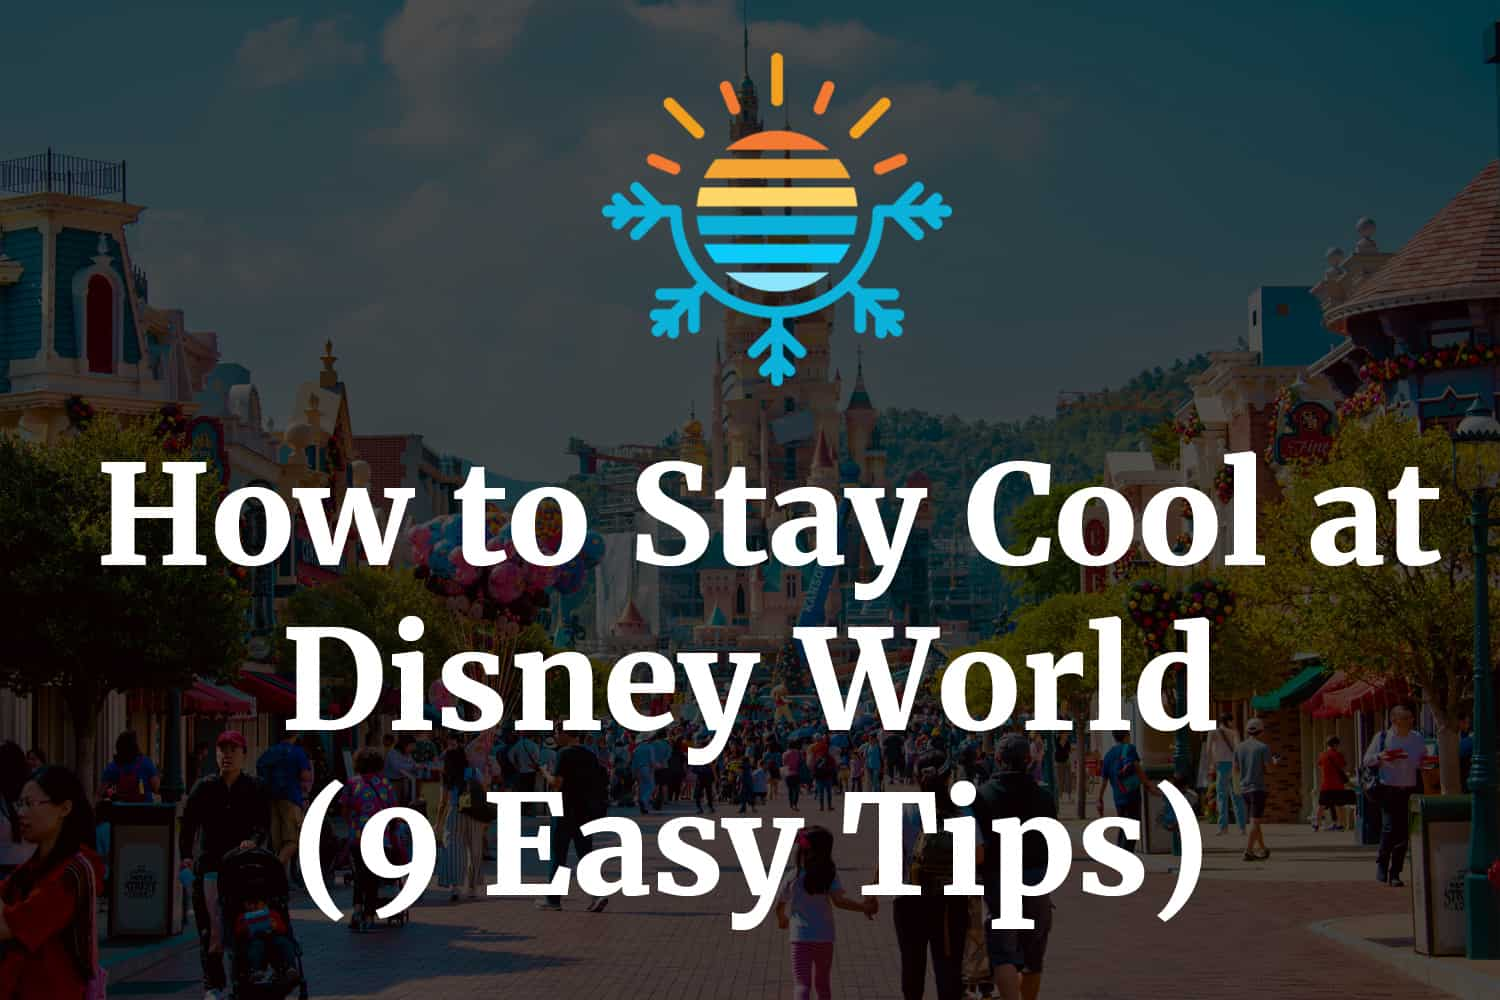 How to Stay Cool at Disney World (9 Easy Tips)